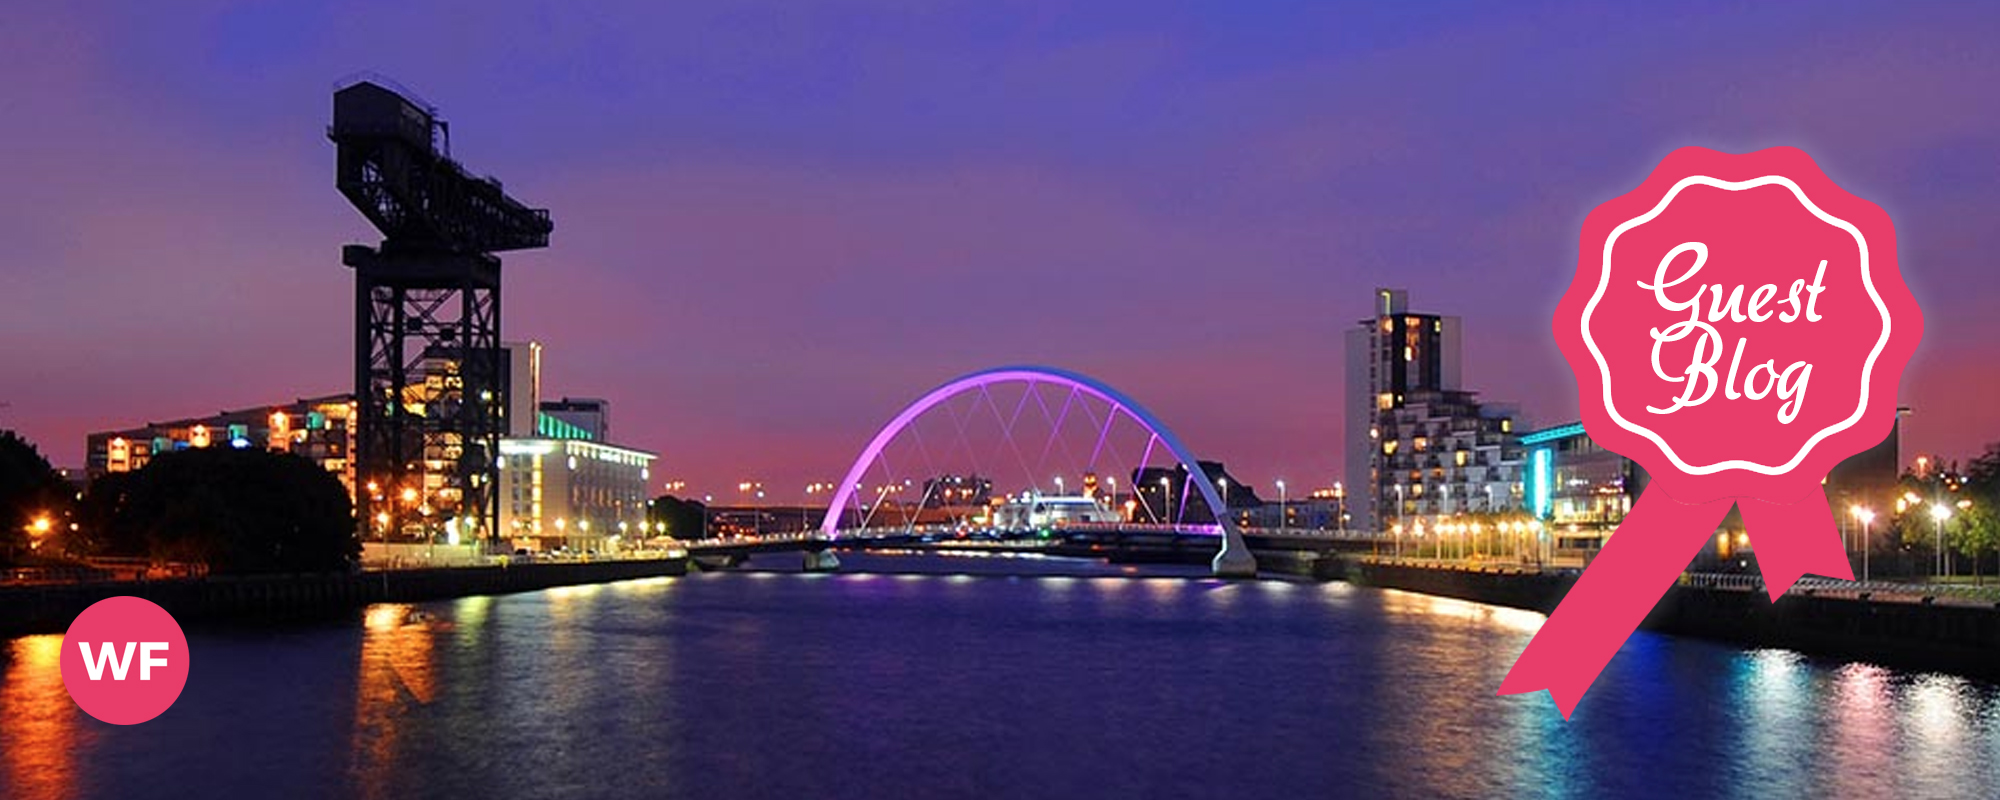 Glasgow proposal hotspots, from the experts at ROX